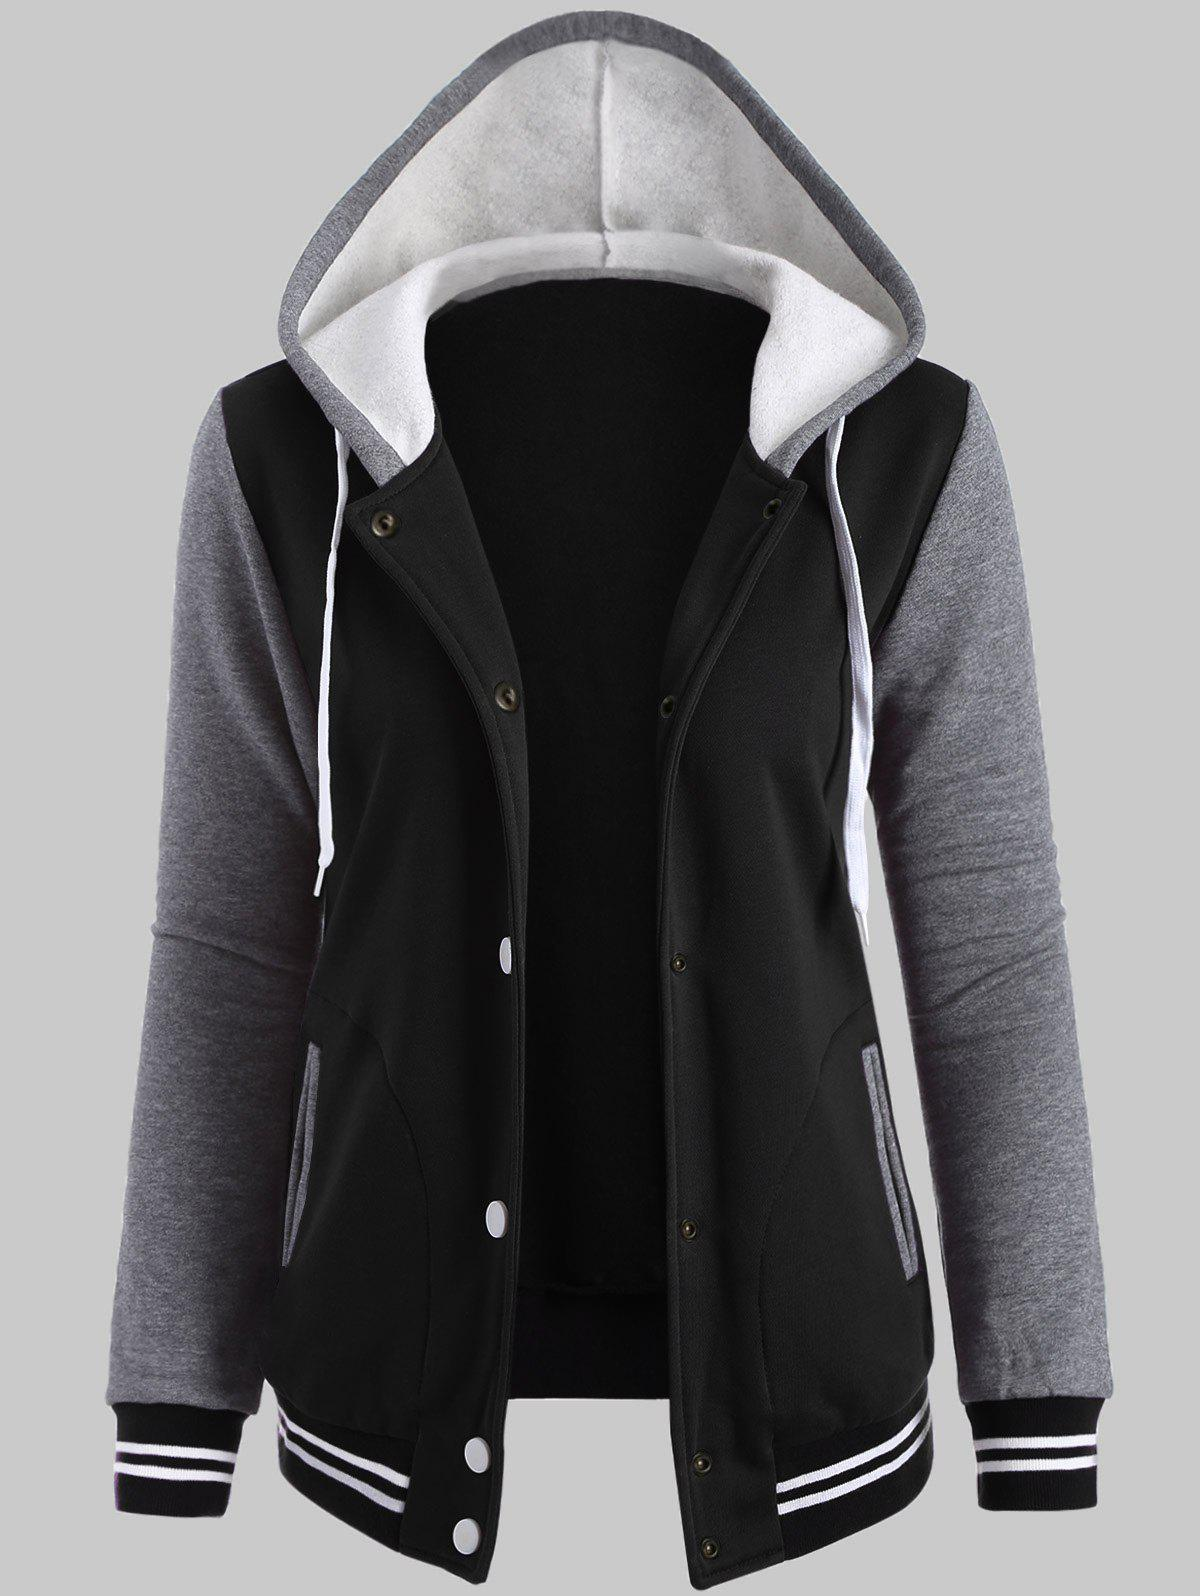 Plus Size Fleece Baseball Jacket with HoodWOMEN<br><br>Size: 2XL; Color: BLACK; Clothes Type: Jackets; Material: Cotton; Type: Wide-waisted; Shirt Length: Regular; Sleeve Length: Full; Collar: Hooded; Pattern Type: Striped; Embellishment: Pockets; Style: Active; Season: Fall,Spring,Winter; Weight: 0.5700kg; Package Contents: 1 x Jacket;